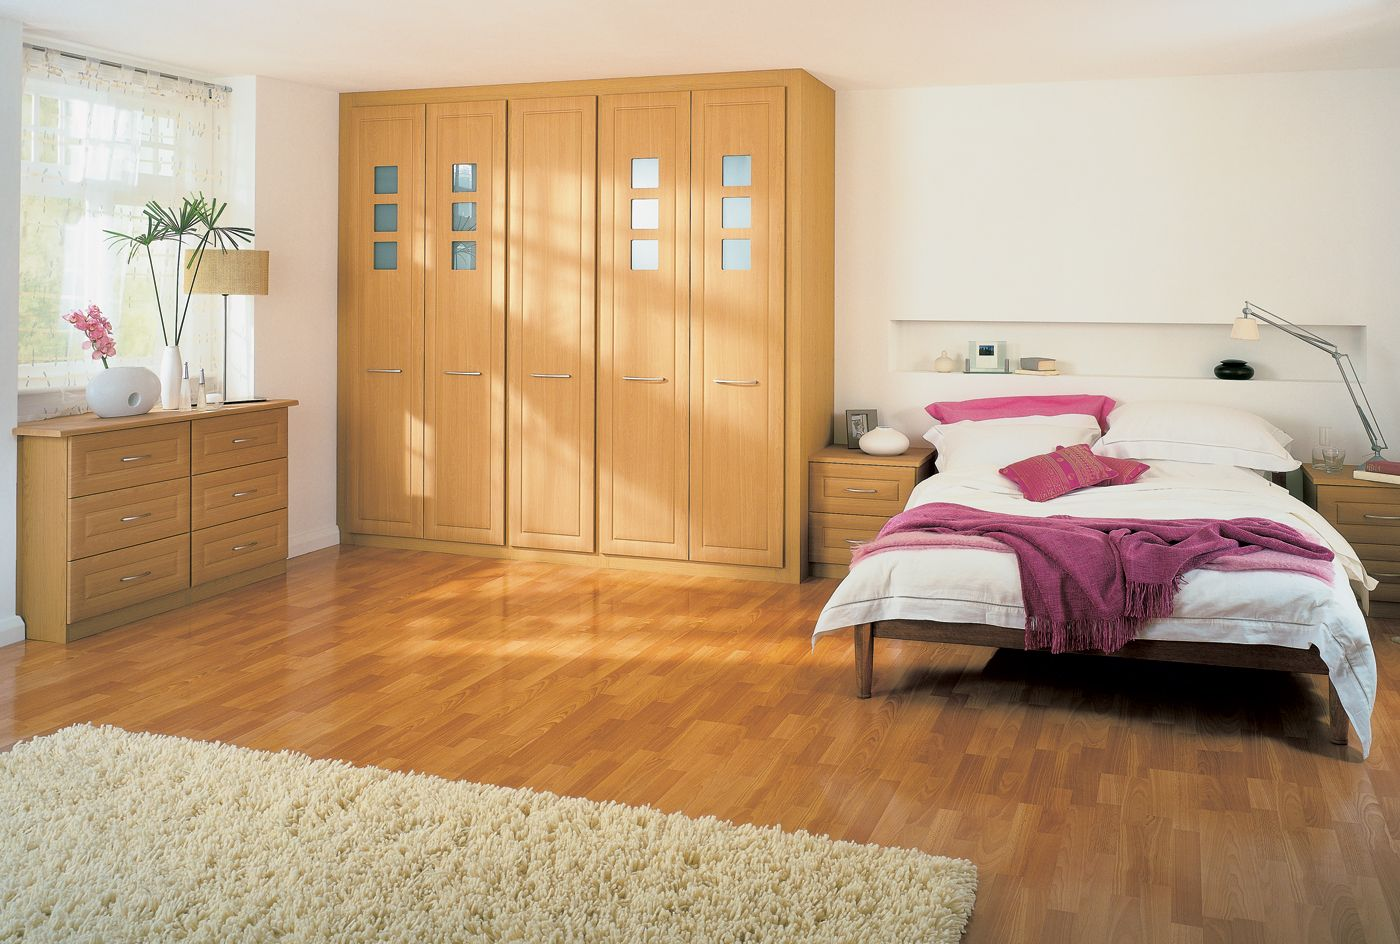 Sharps Fitted Bedroom Furniture Madrid Bedroom Furniture Wardrobes From Sharps Http Wwwsharps